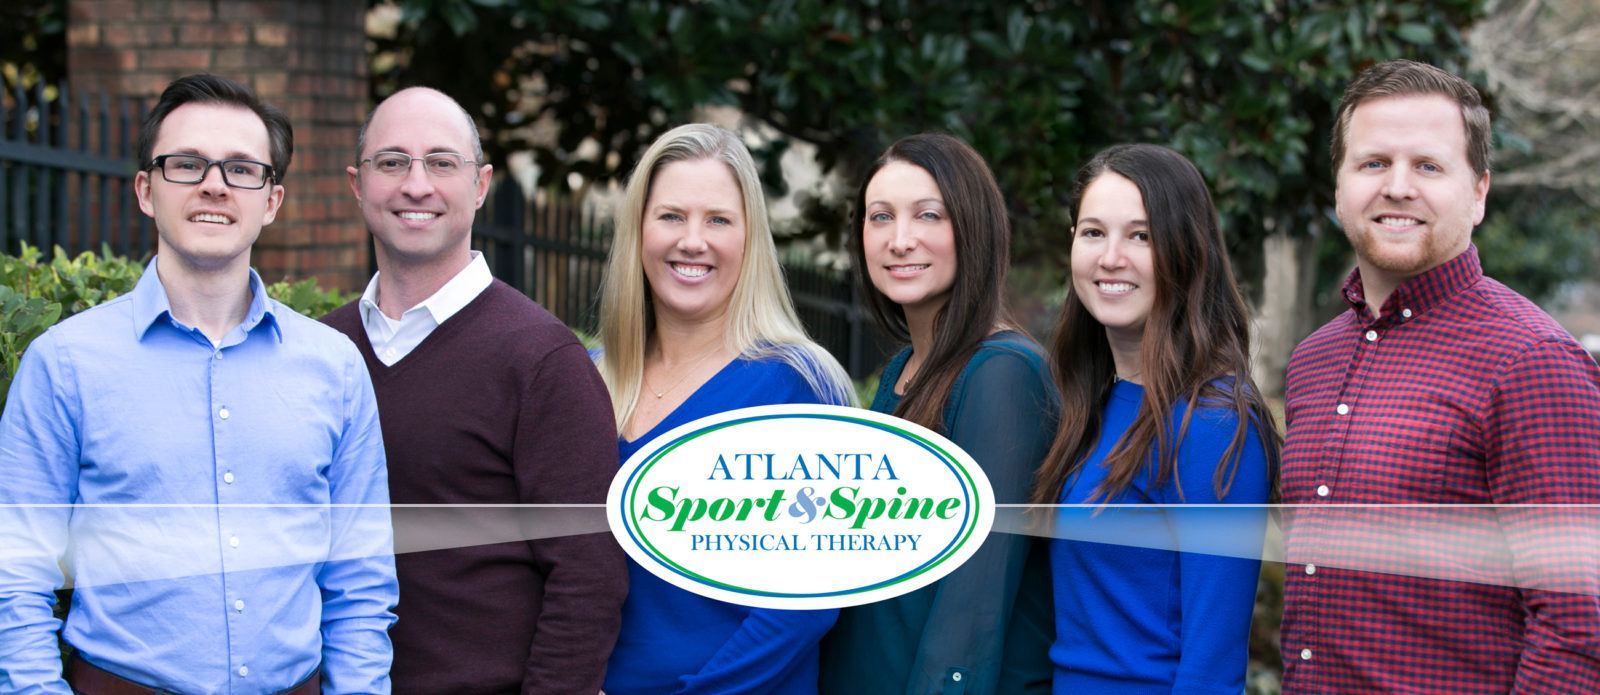 Our professional team will get you back to doing what you love!